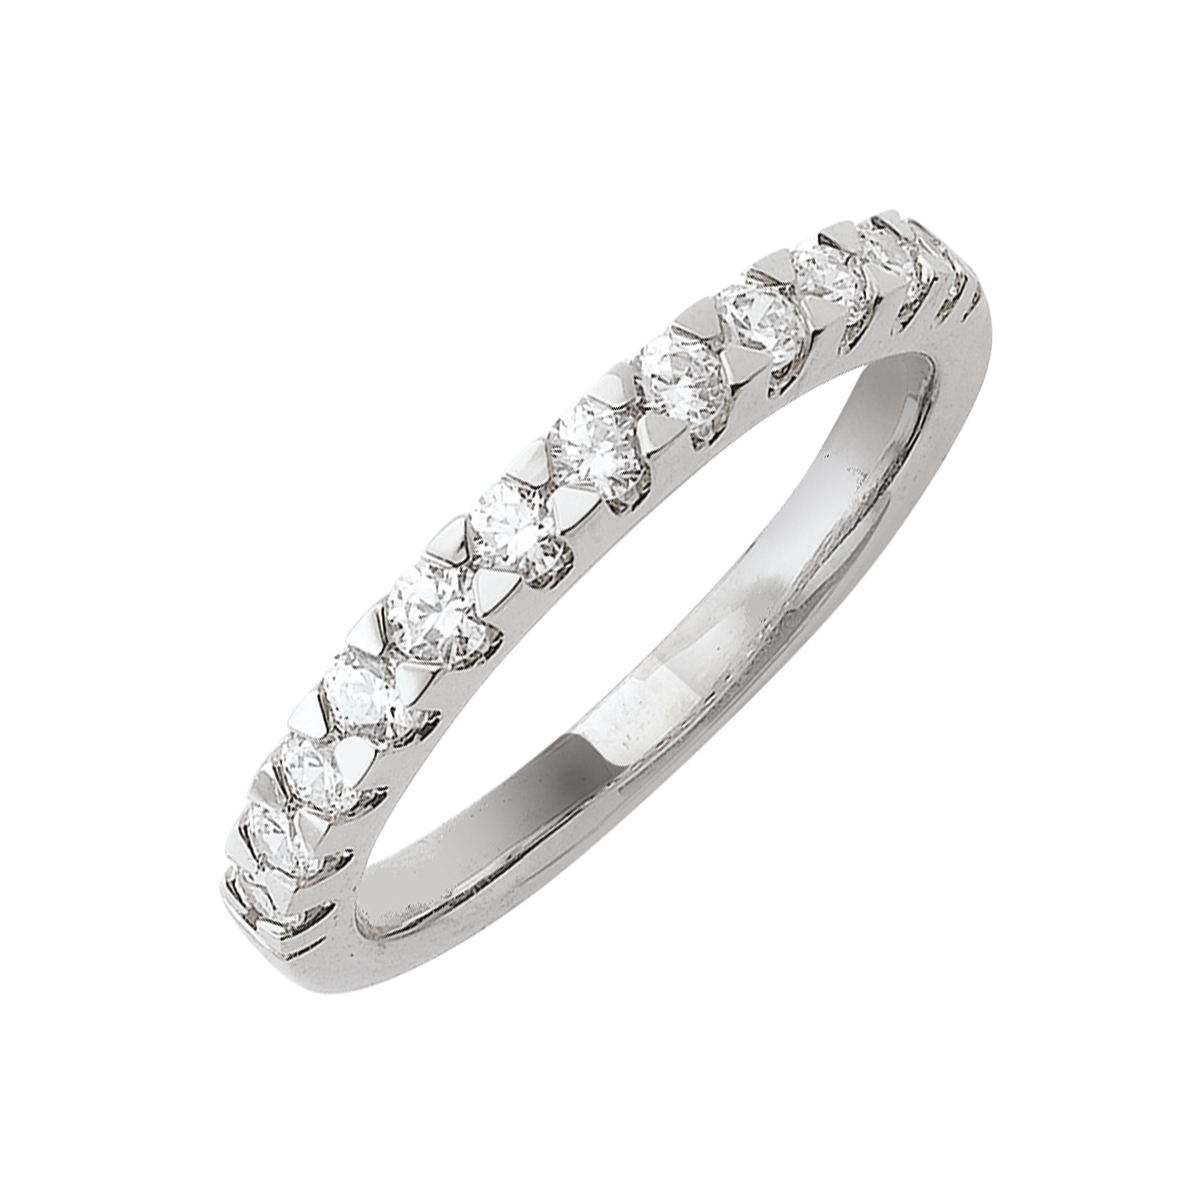 Alliance demi-tour serti griffes or blanc - Diamants synthétiques 0,50 carat